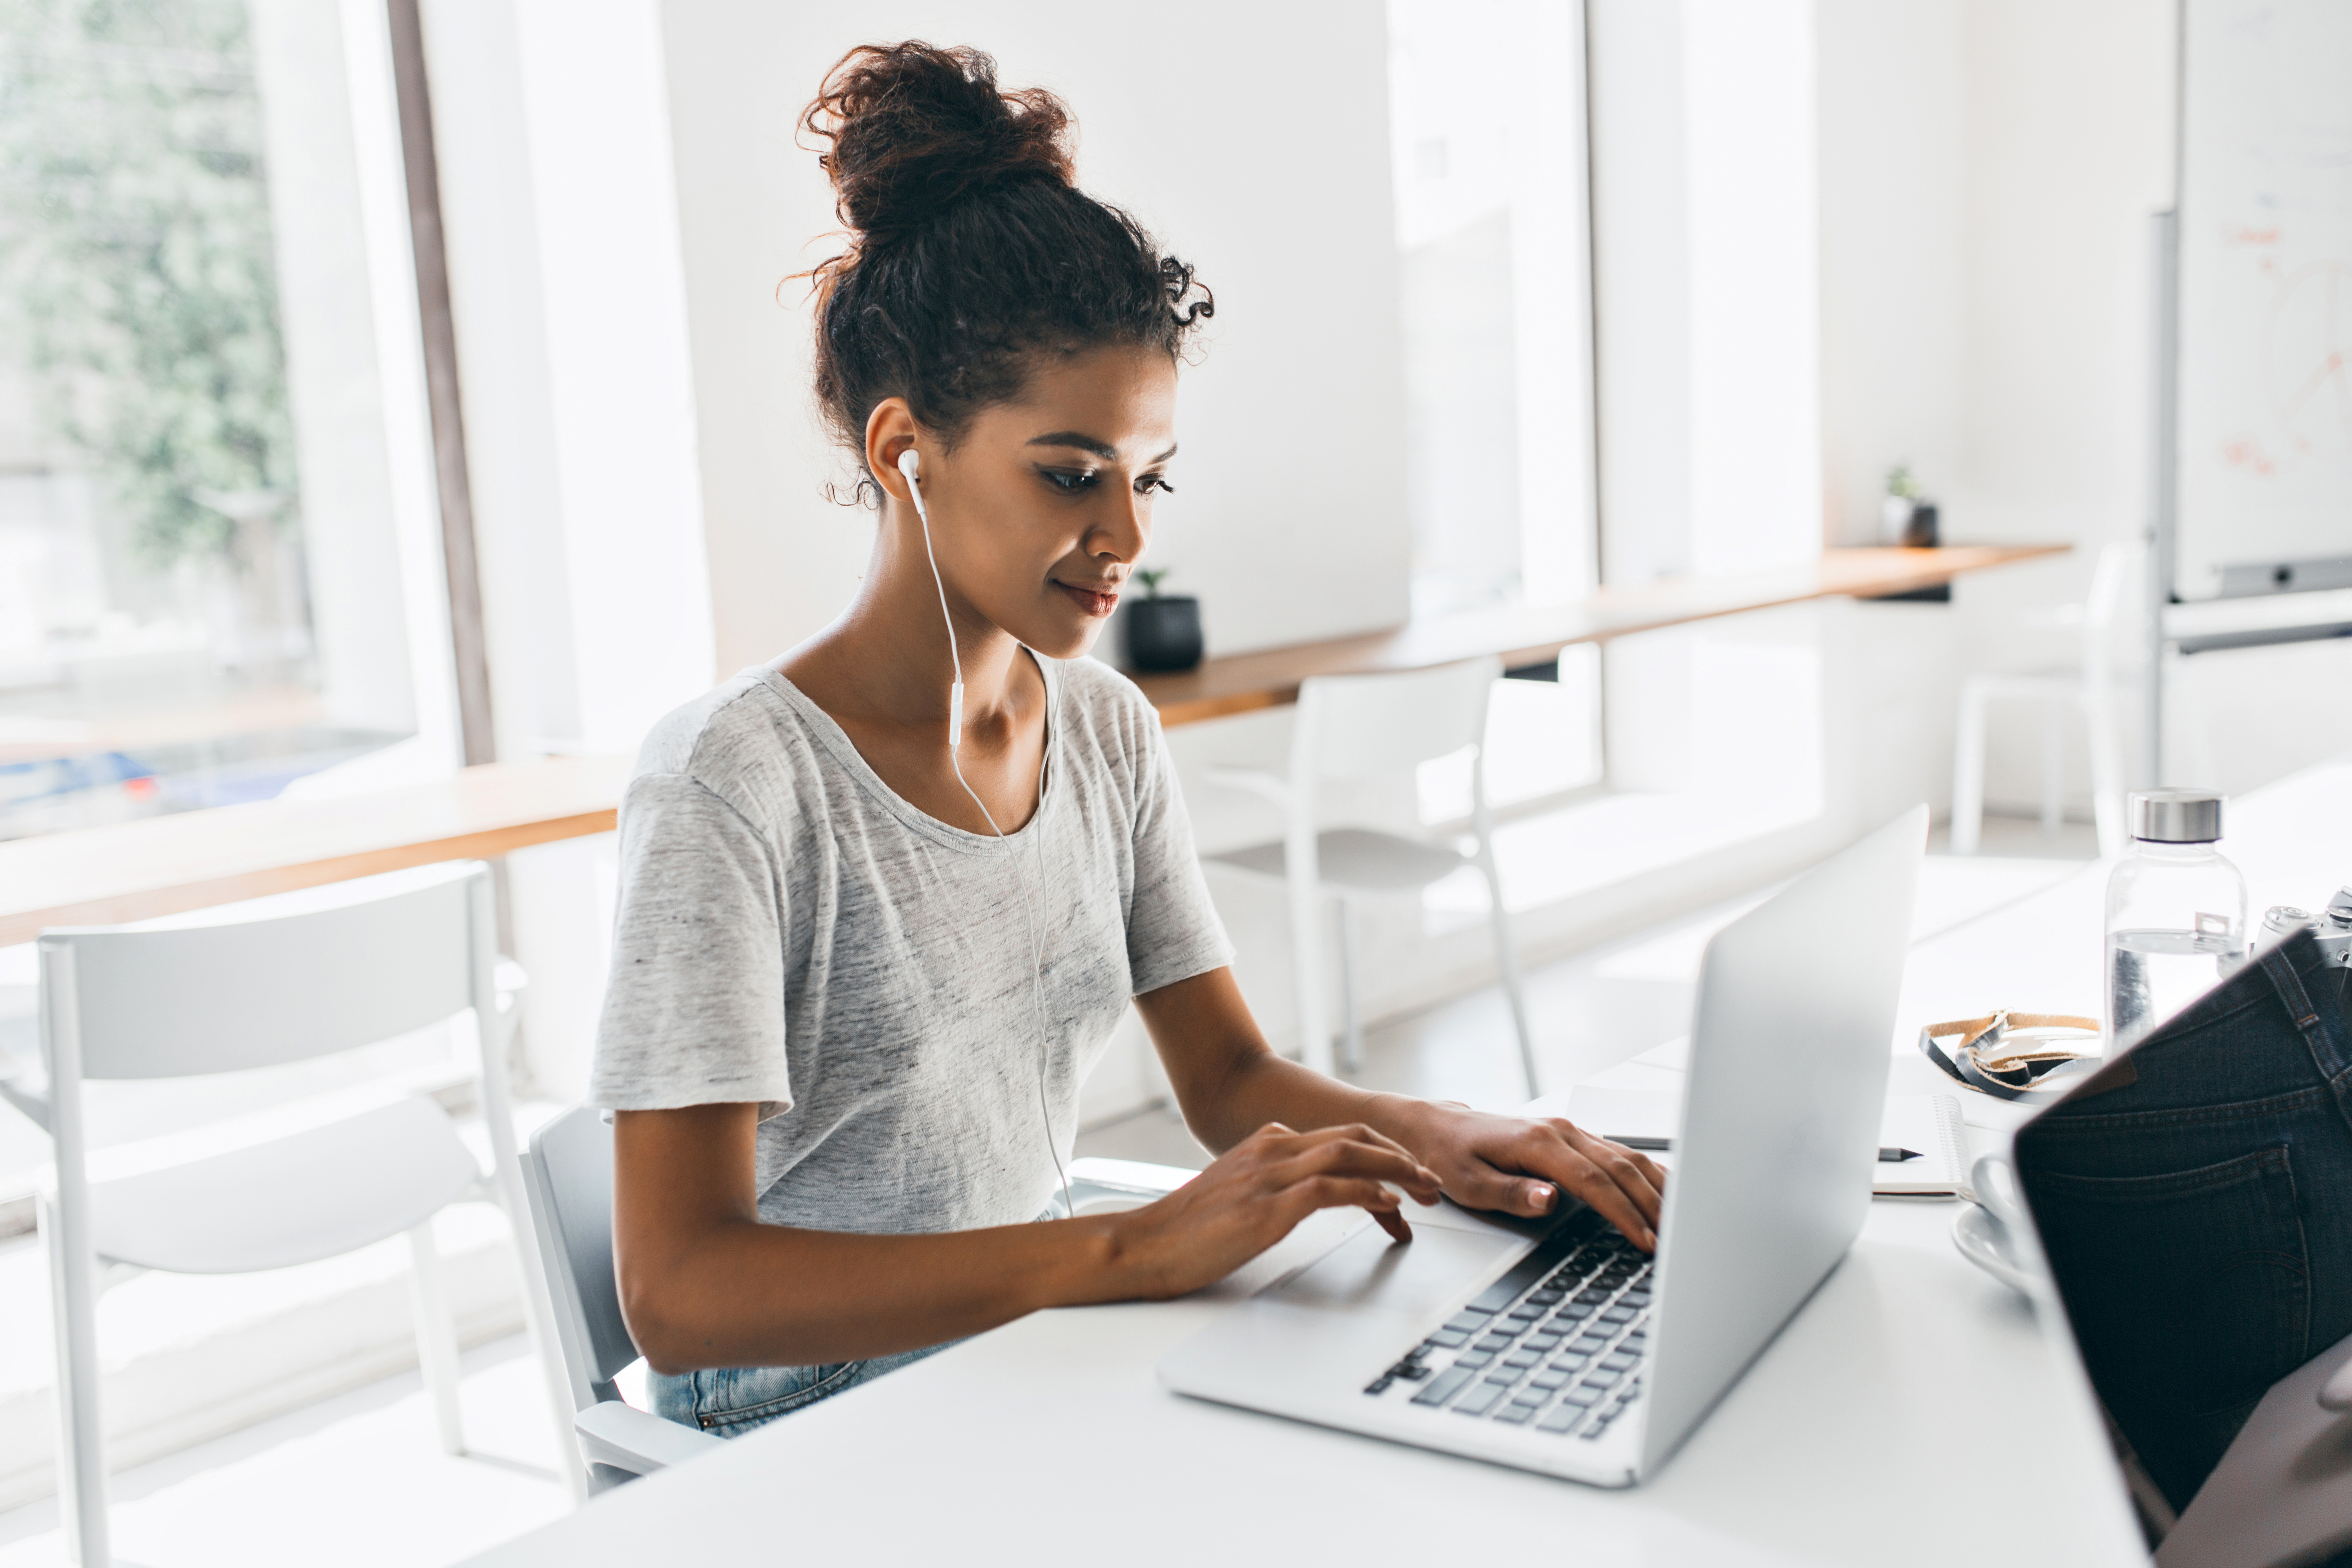 romantic-african-woman-with-trendy-hairstyle-sitting-at-her-workplace-and-analysing-data-indoor-portrait-of-black-female-student-working-with-laptop-before-exam